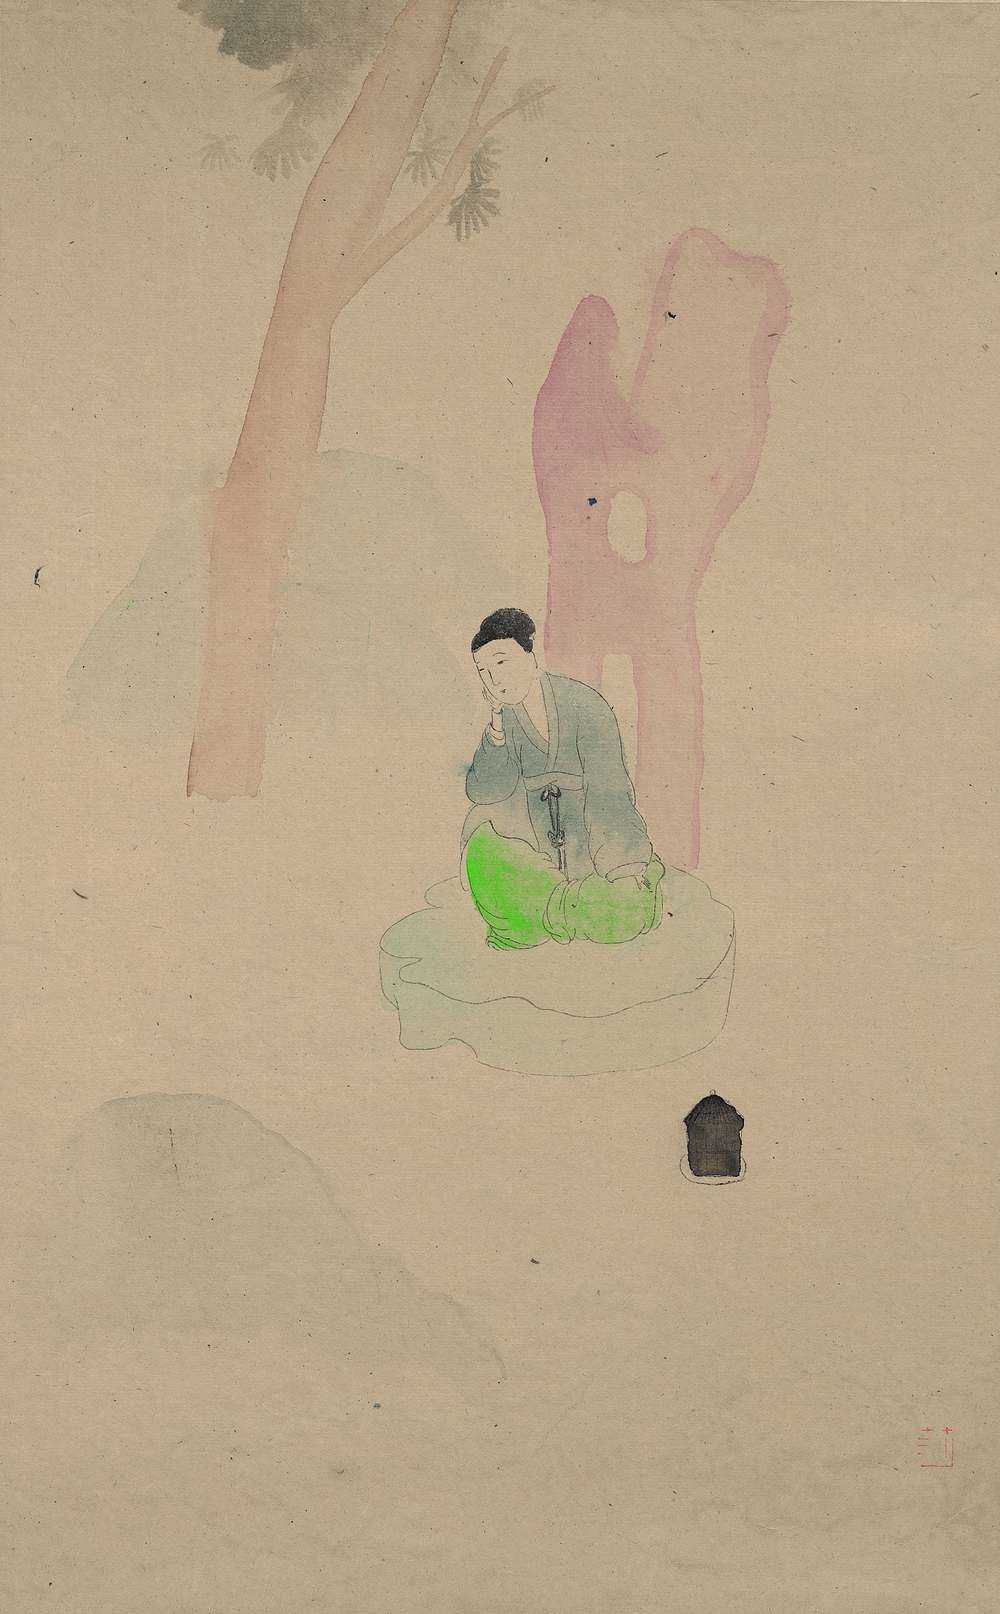 Wang Mengsha 王濛莎, Flower Mirror 花镜系列, 2010, Chinese ink and color on rice paper 纸本水墨设色, 80 x 60 cm